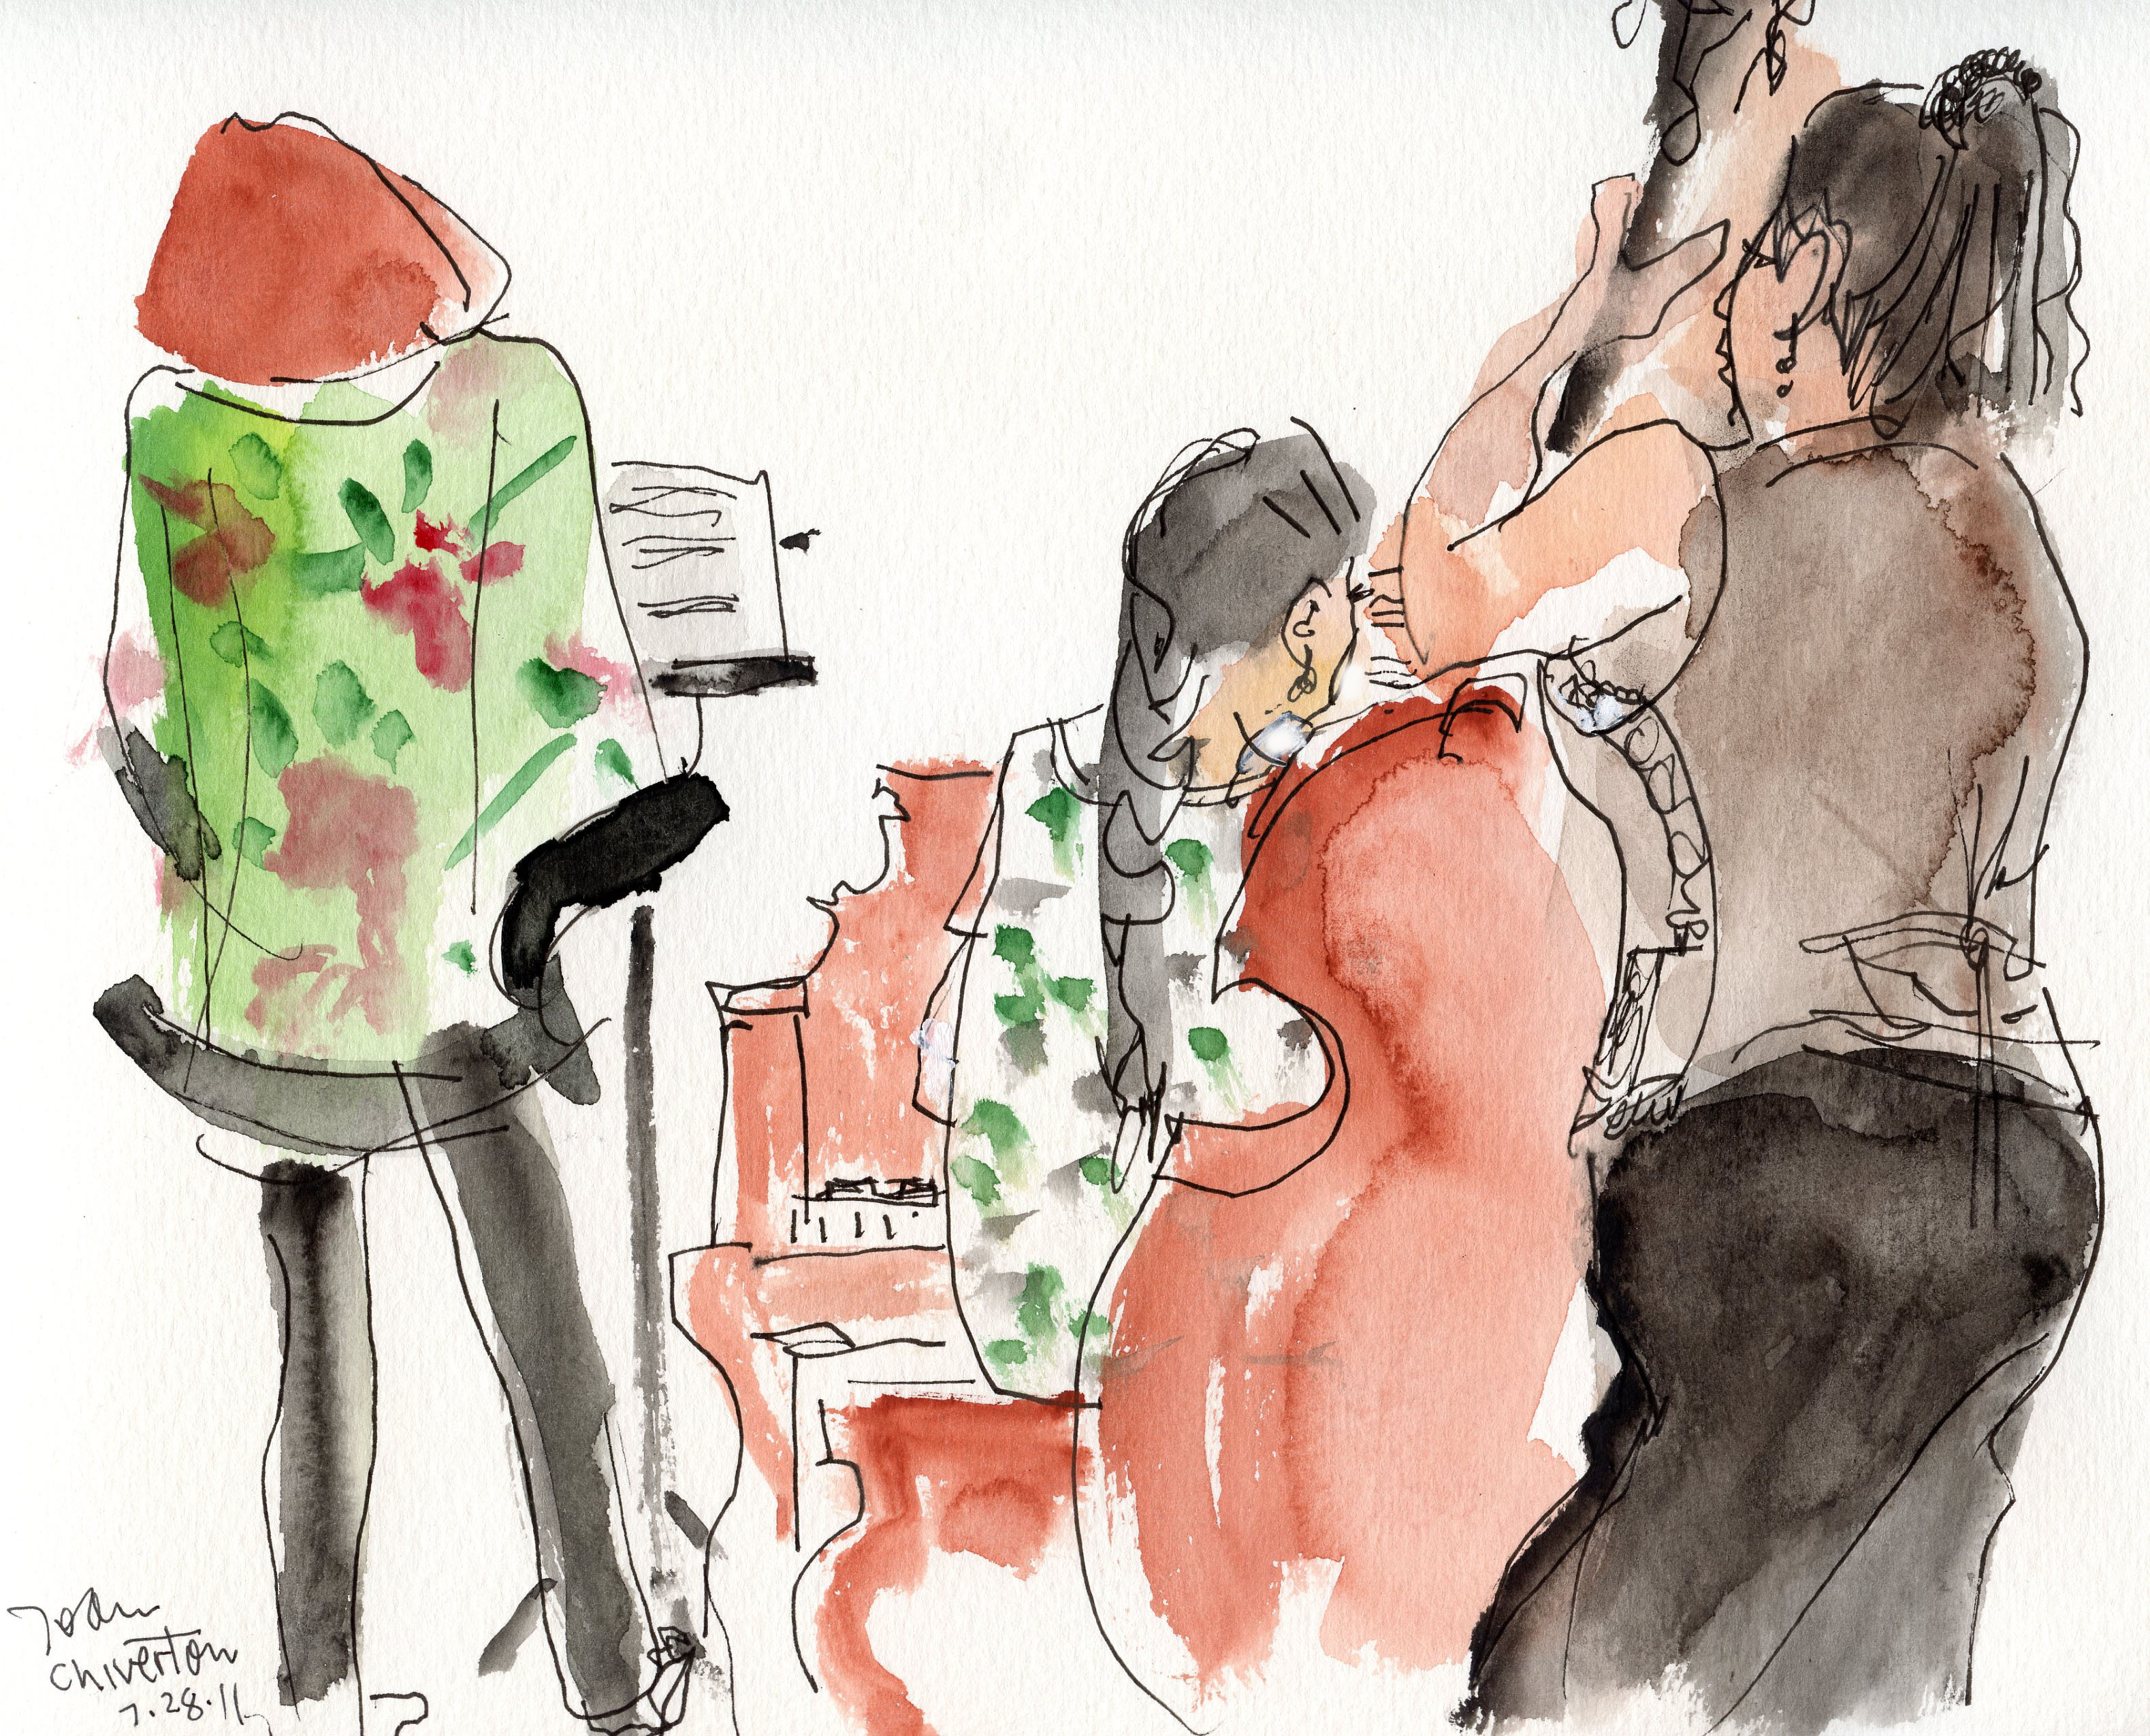 Manuela Lechler, Kyoko Oyobe, Debbie Kennedy Performing Sketch Night. Art by Joann Chiverton